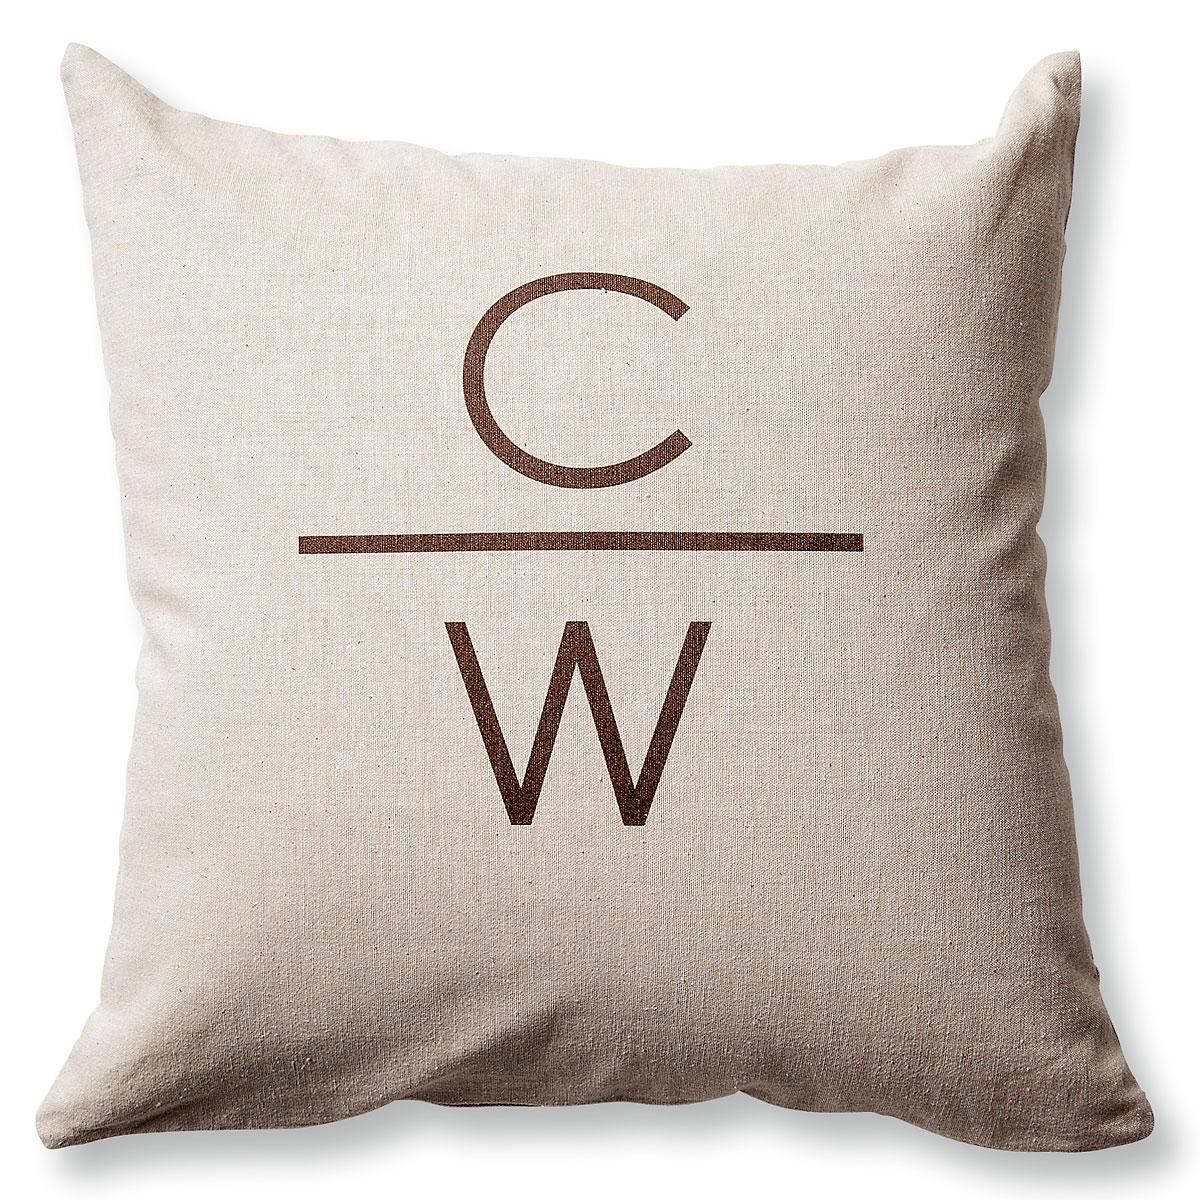 2 Initials with Line Pillow